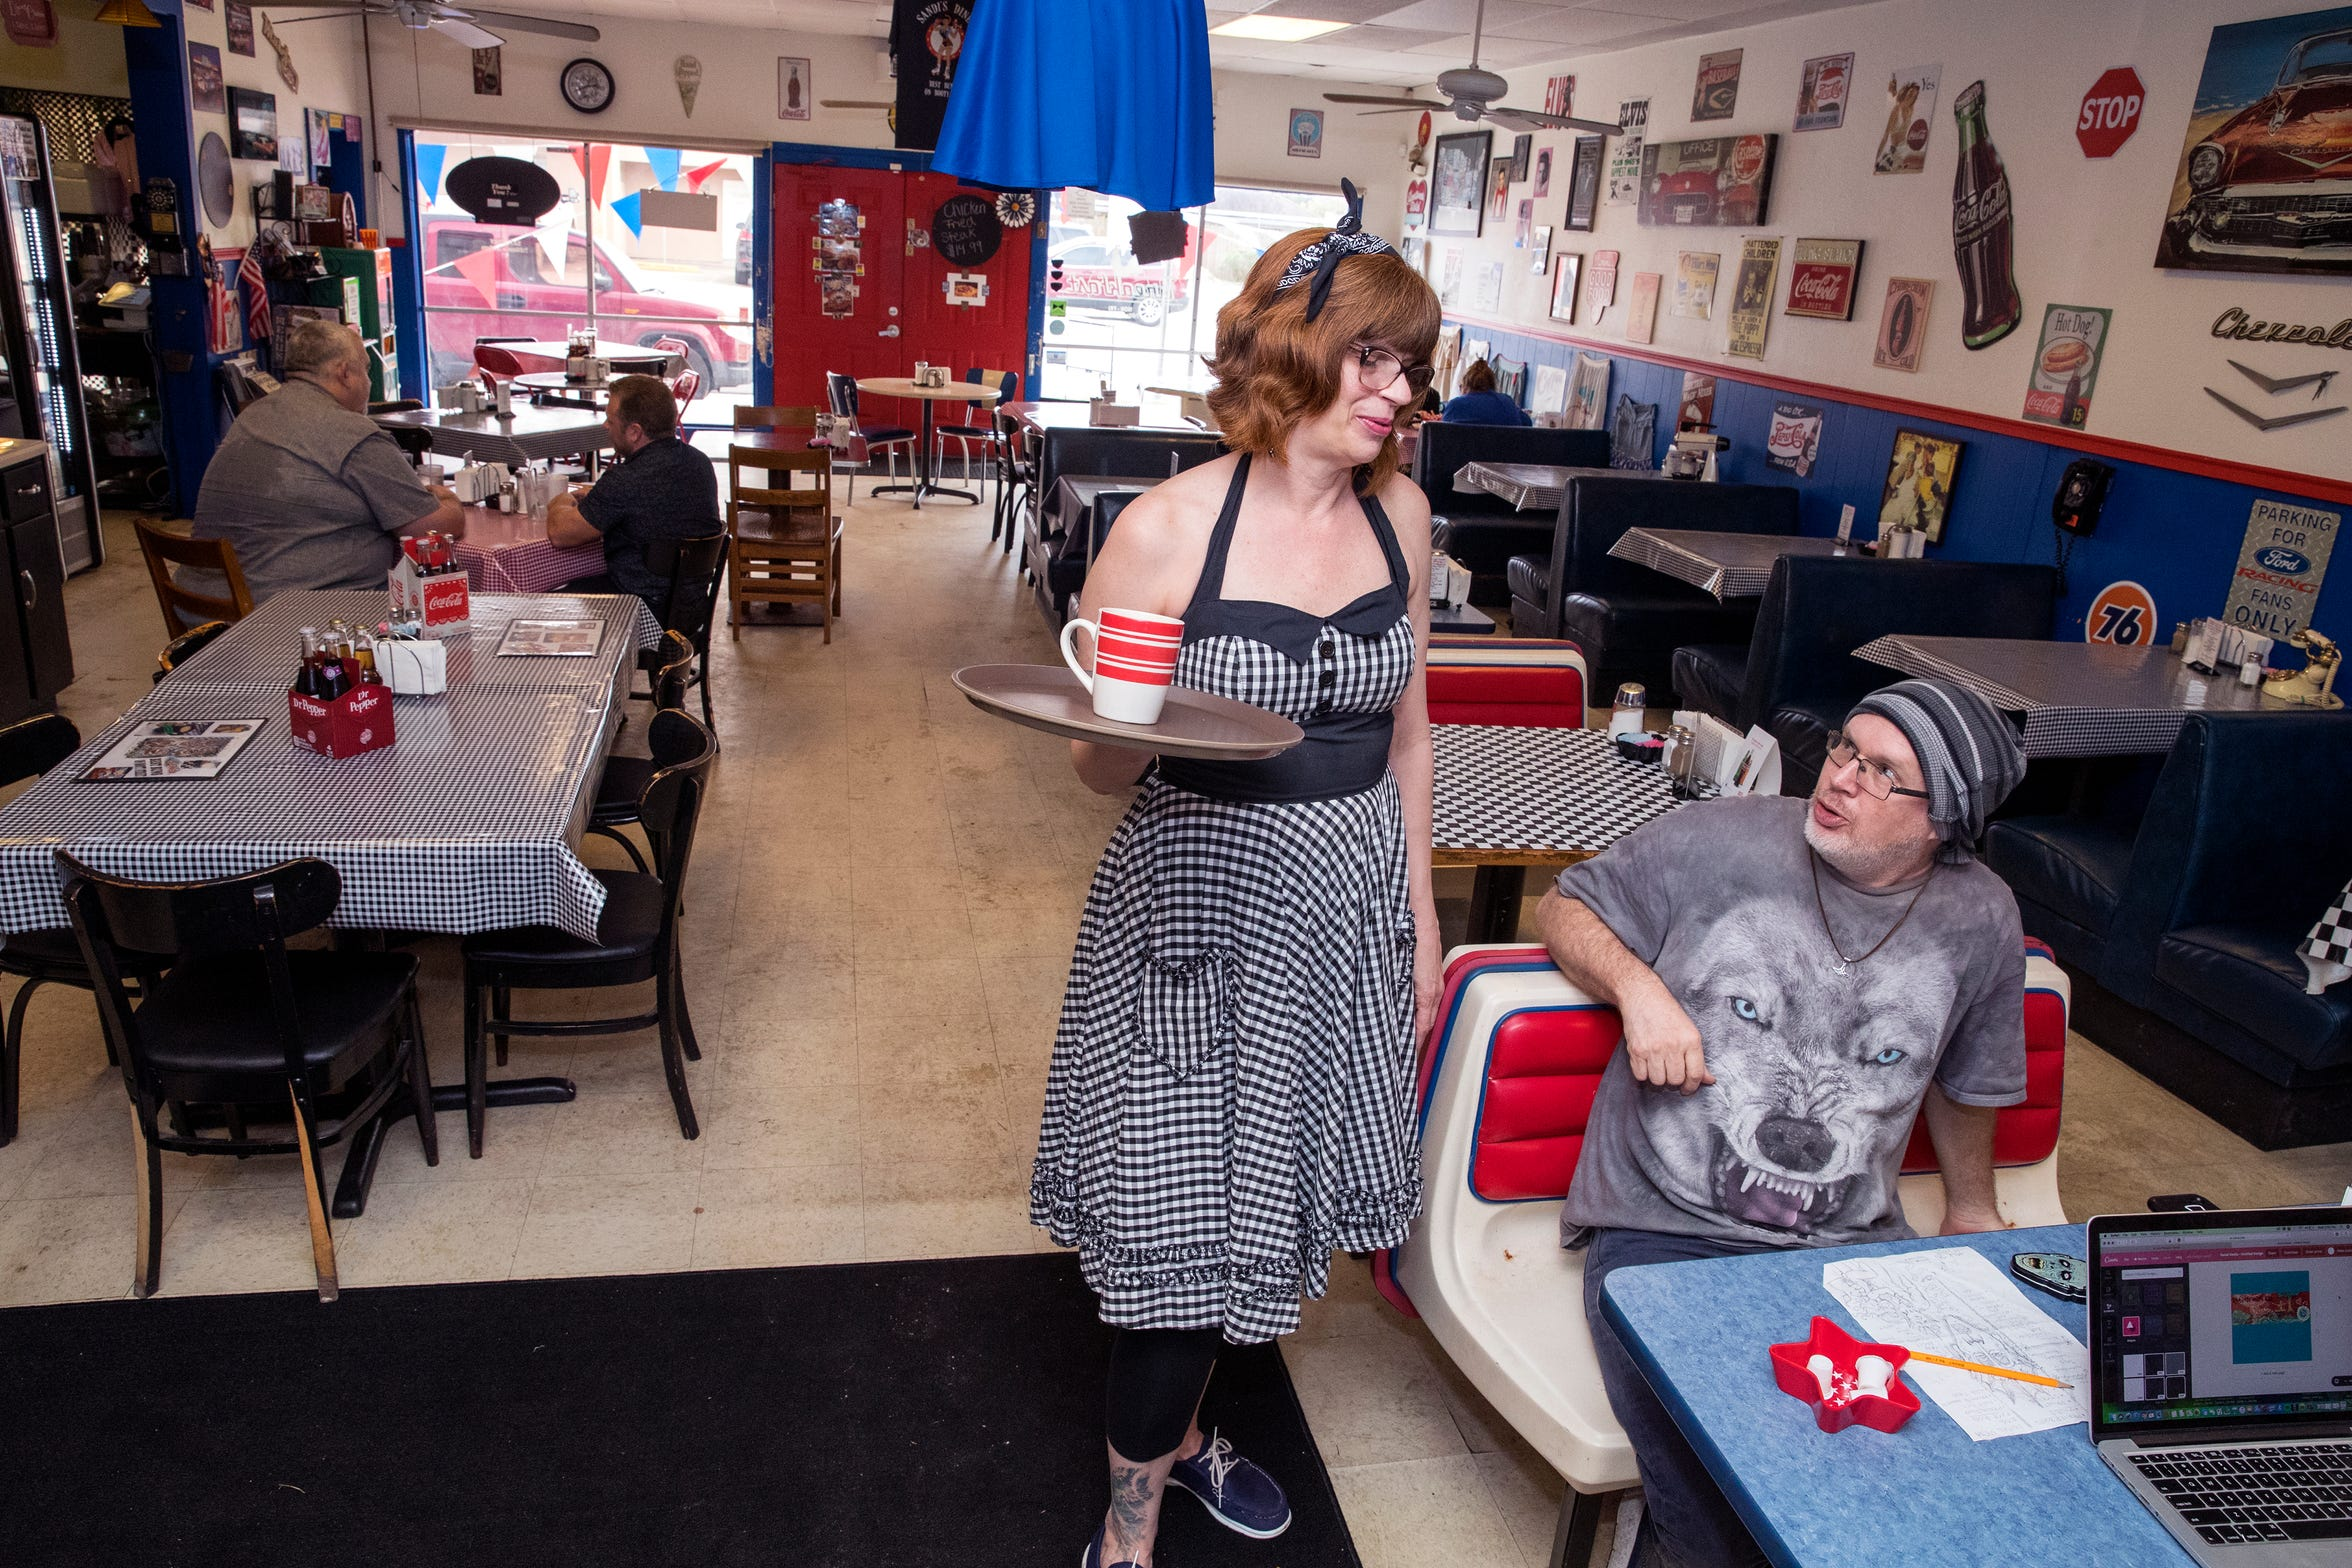 Sandi Clark, owner of Sandi's Diner on Ayers Street, talks with customer Eric Payne at the diner on Wednesday, February 6, 2019. The diner is hosting a grand reopening on Friday to celebrate six years of business.